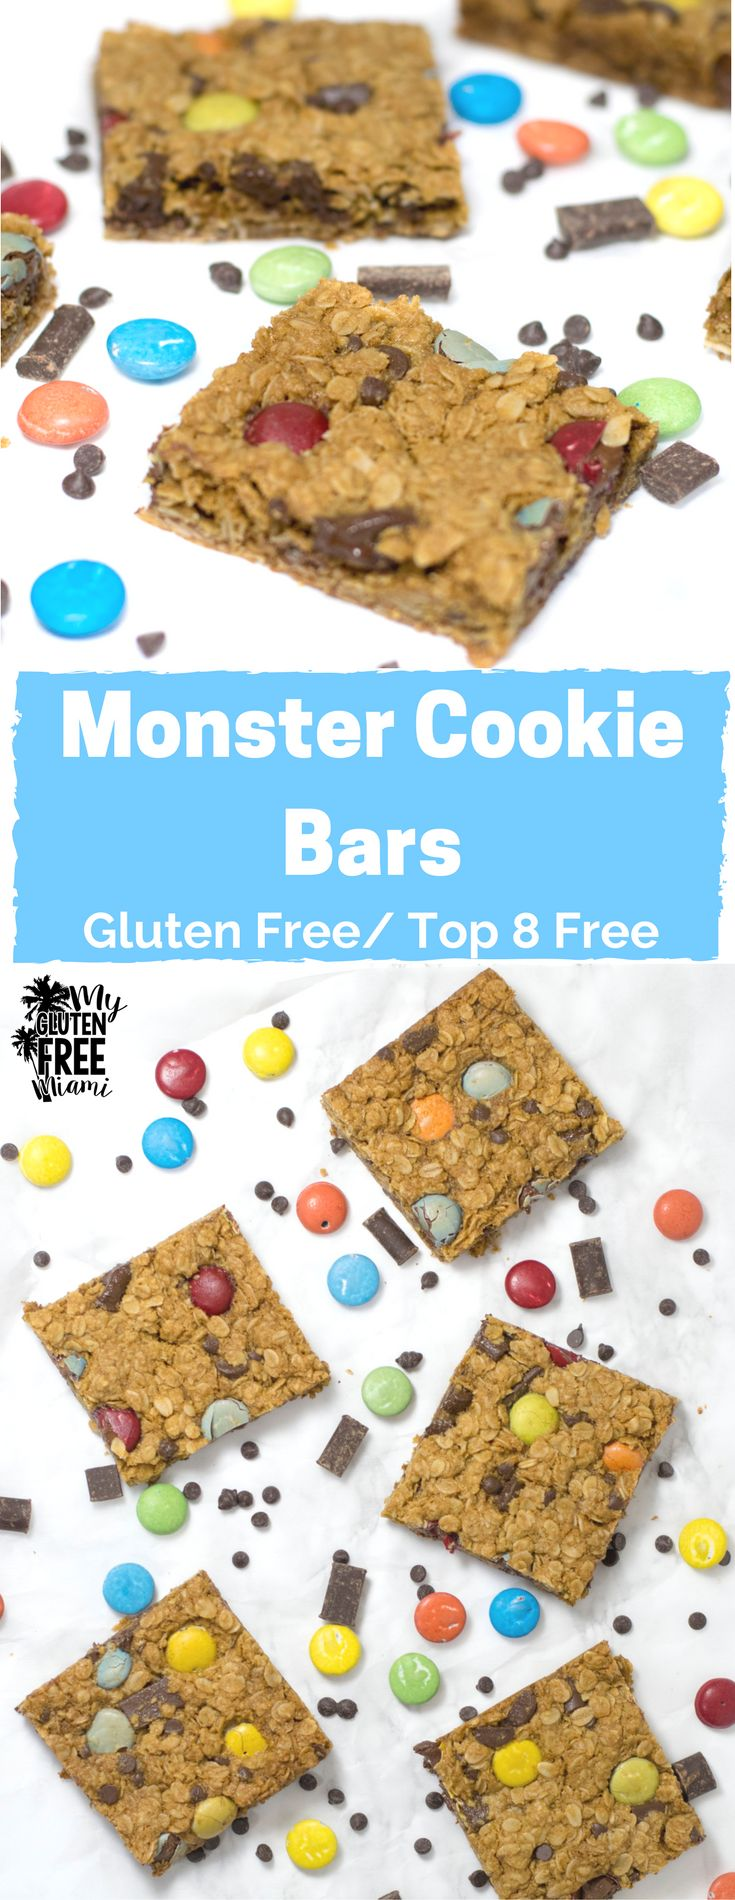 Chewy and packed full of chocolate, these Top 8 Allergen Free Monster Cookie Bars are going to be a hit with everyone! via @GLUTENFREEMIAMI